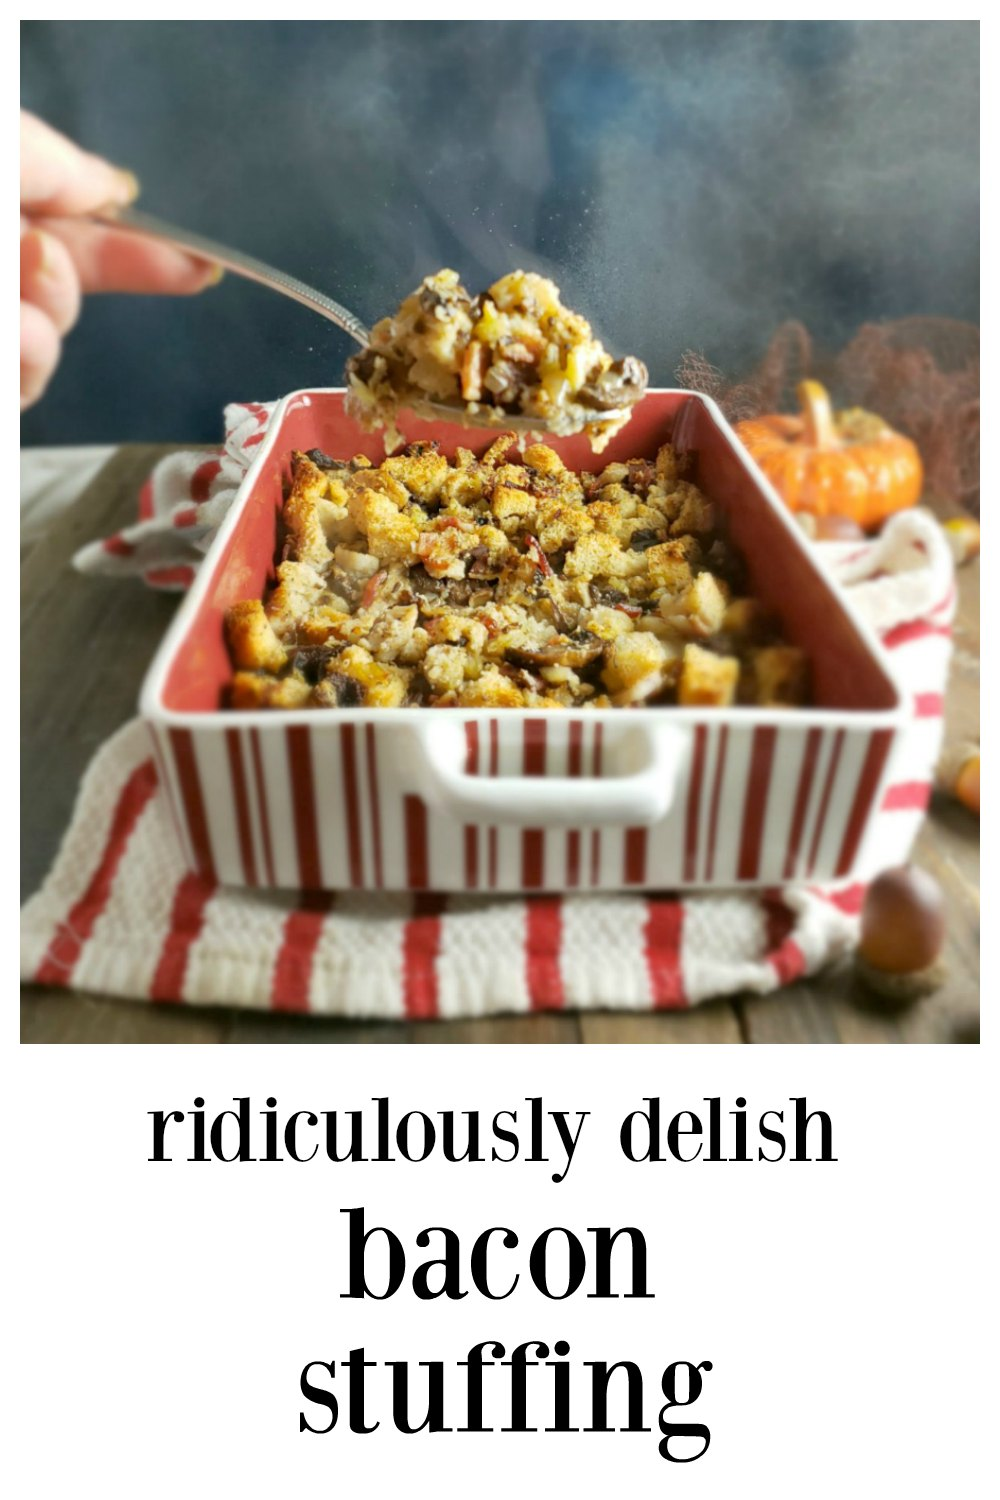 My Sister's Ridiculously Delish Thanksgiving Bacon Stuffing - Have you ever wished there could be a Turkey Stuffing permeated with the flavor and smokiness of bacon? Here it is and it is fabulous! And it's not just bacon, there is all kinds of good stuff in this! #BaconStuffing #BaconDressing #ThanksgivingStuffing #TurkeyStuffing #HolidayStuffing